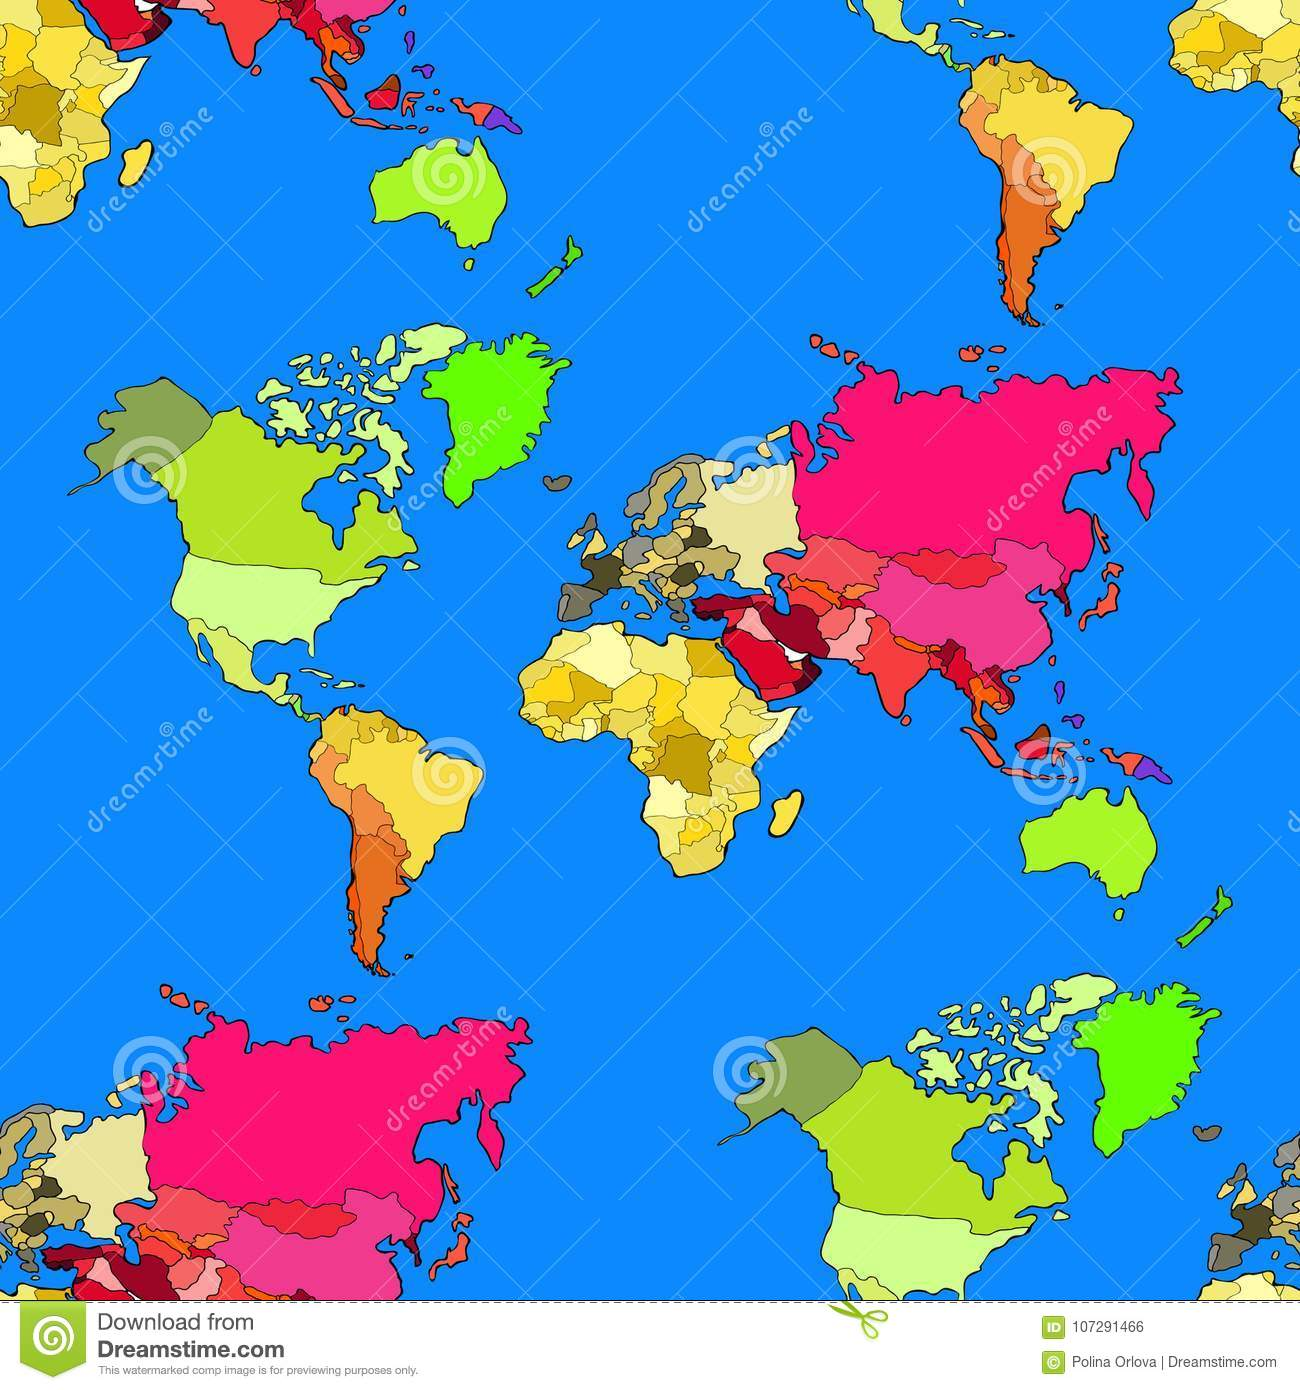 Seamless pattern world map continents and countries vector illu download seamless pattern world map continents and countries vector illu stock vector illustration of gumiabroncs Choice Image